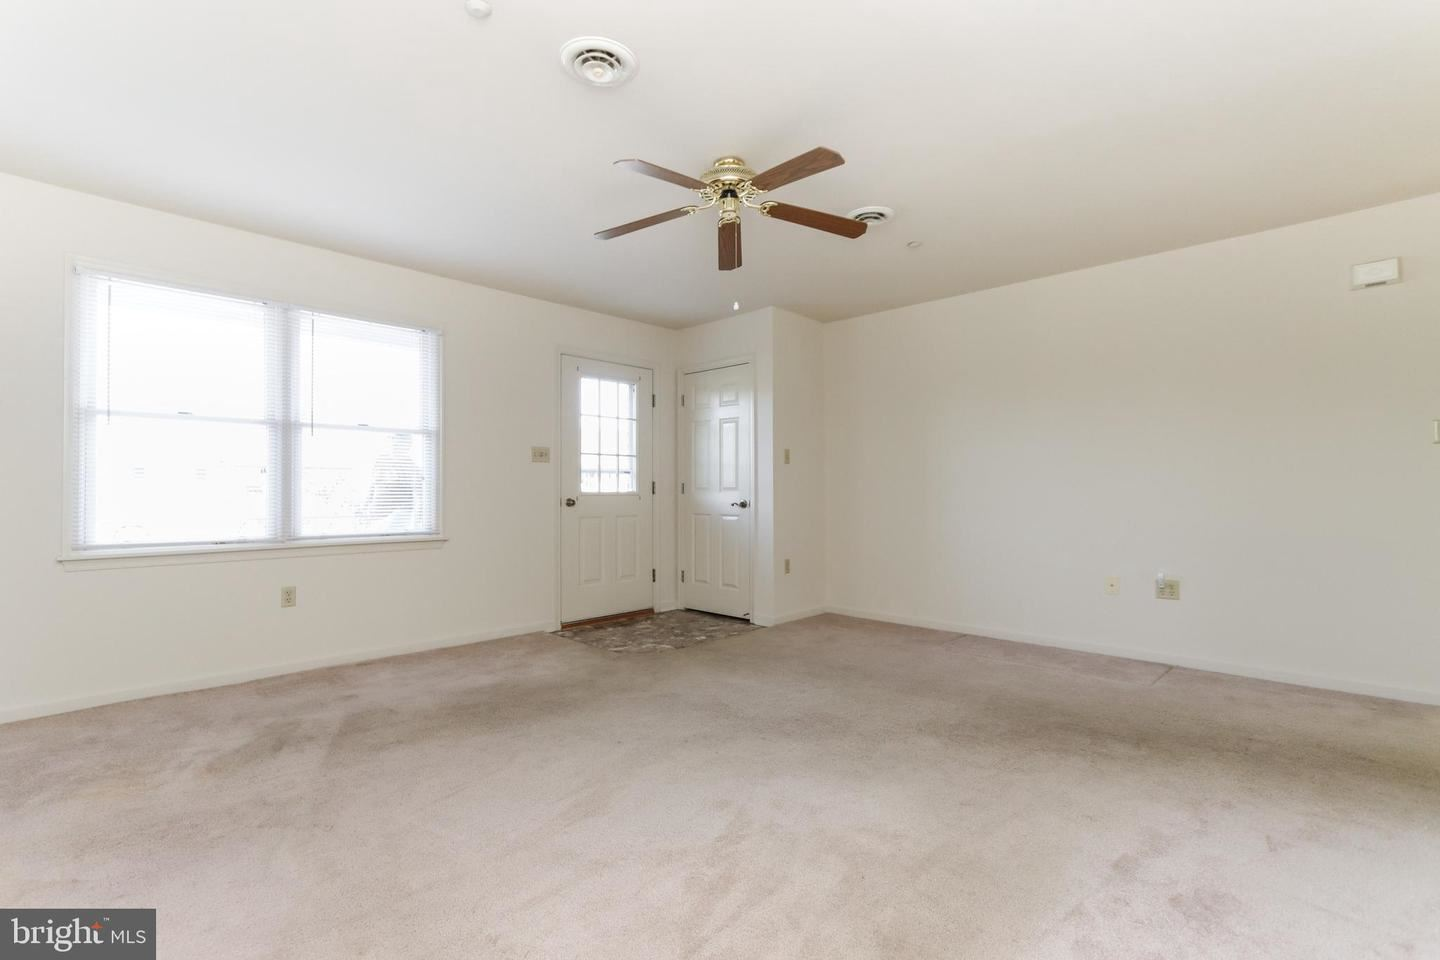 Photo of 147 BUTTERCUP DR, HAGERSTOWN, MD 21740 (MLS # MDWA2000245)